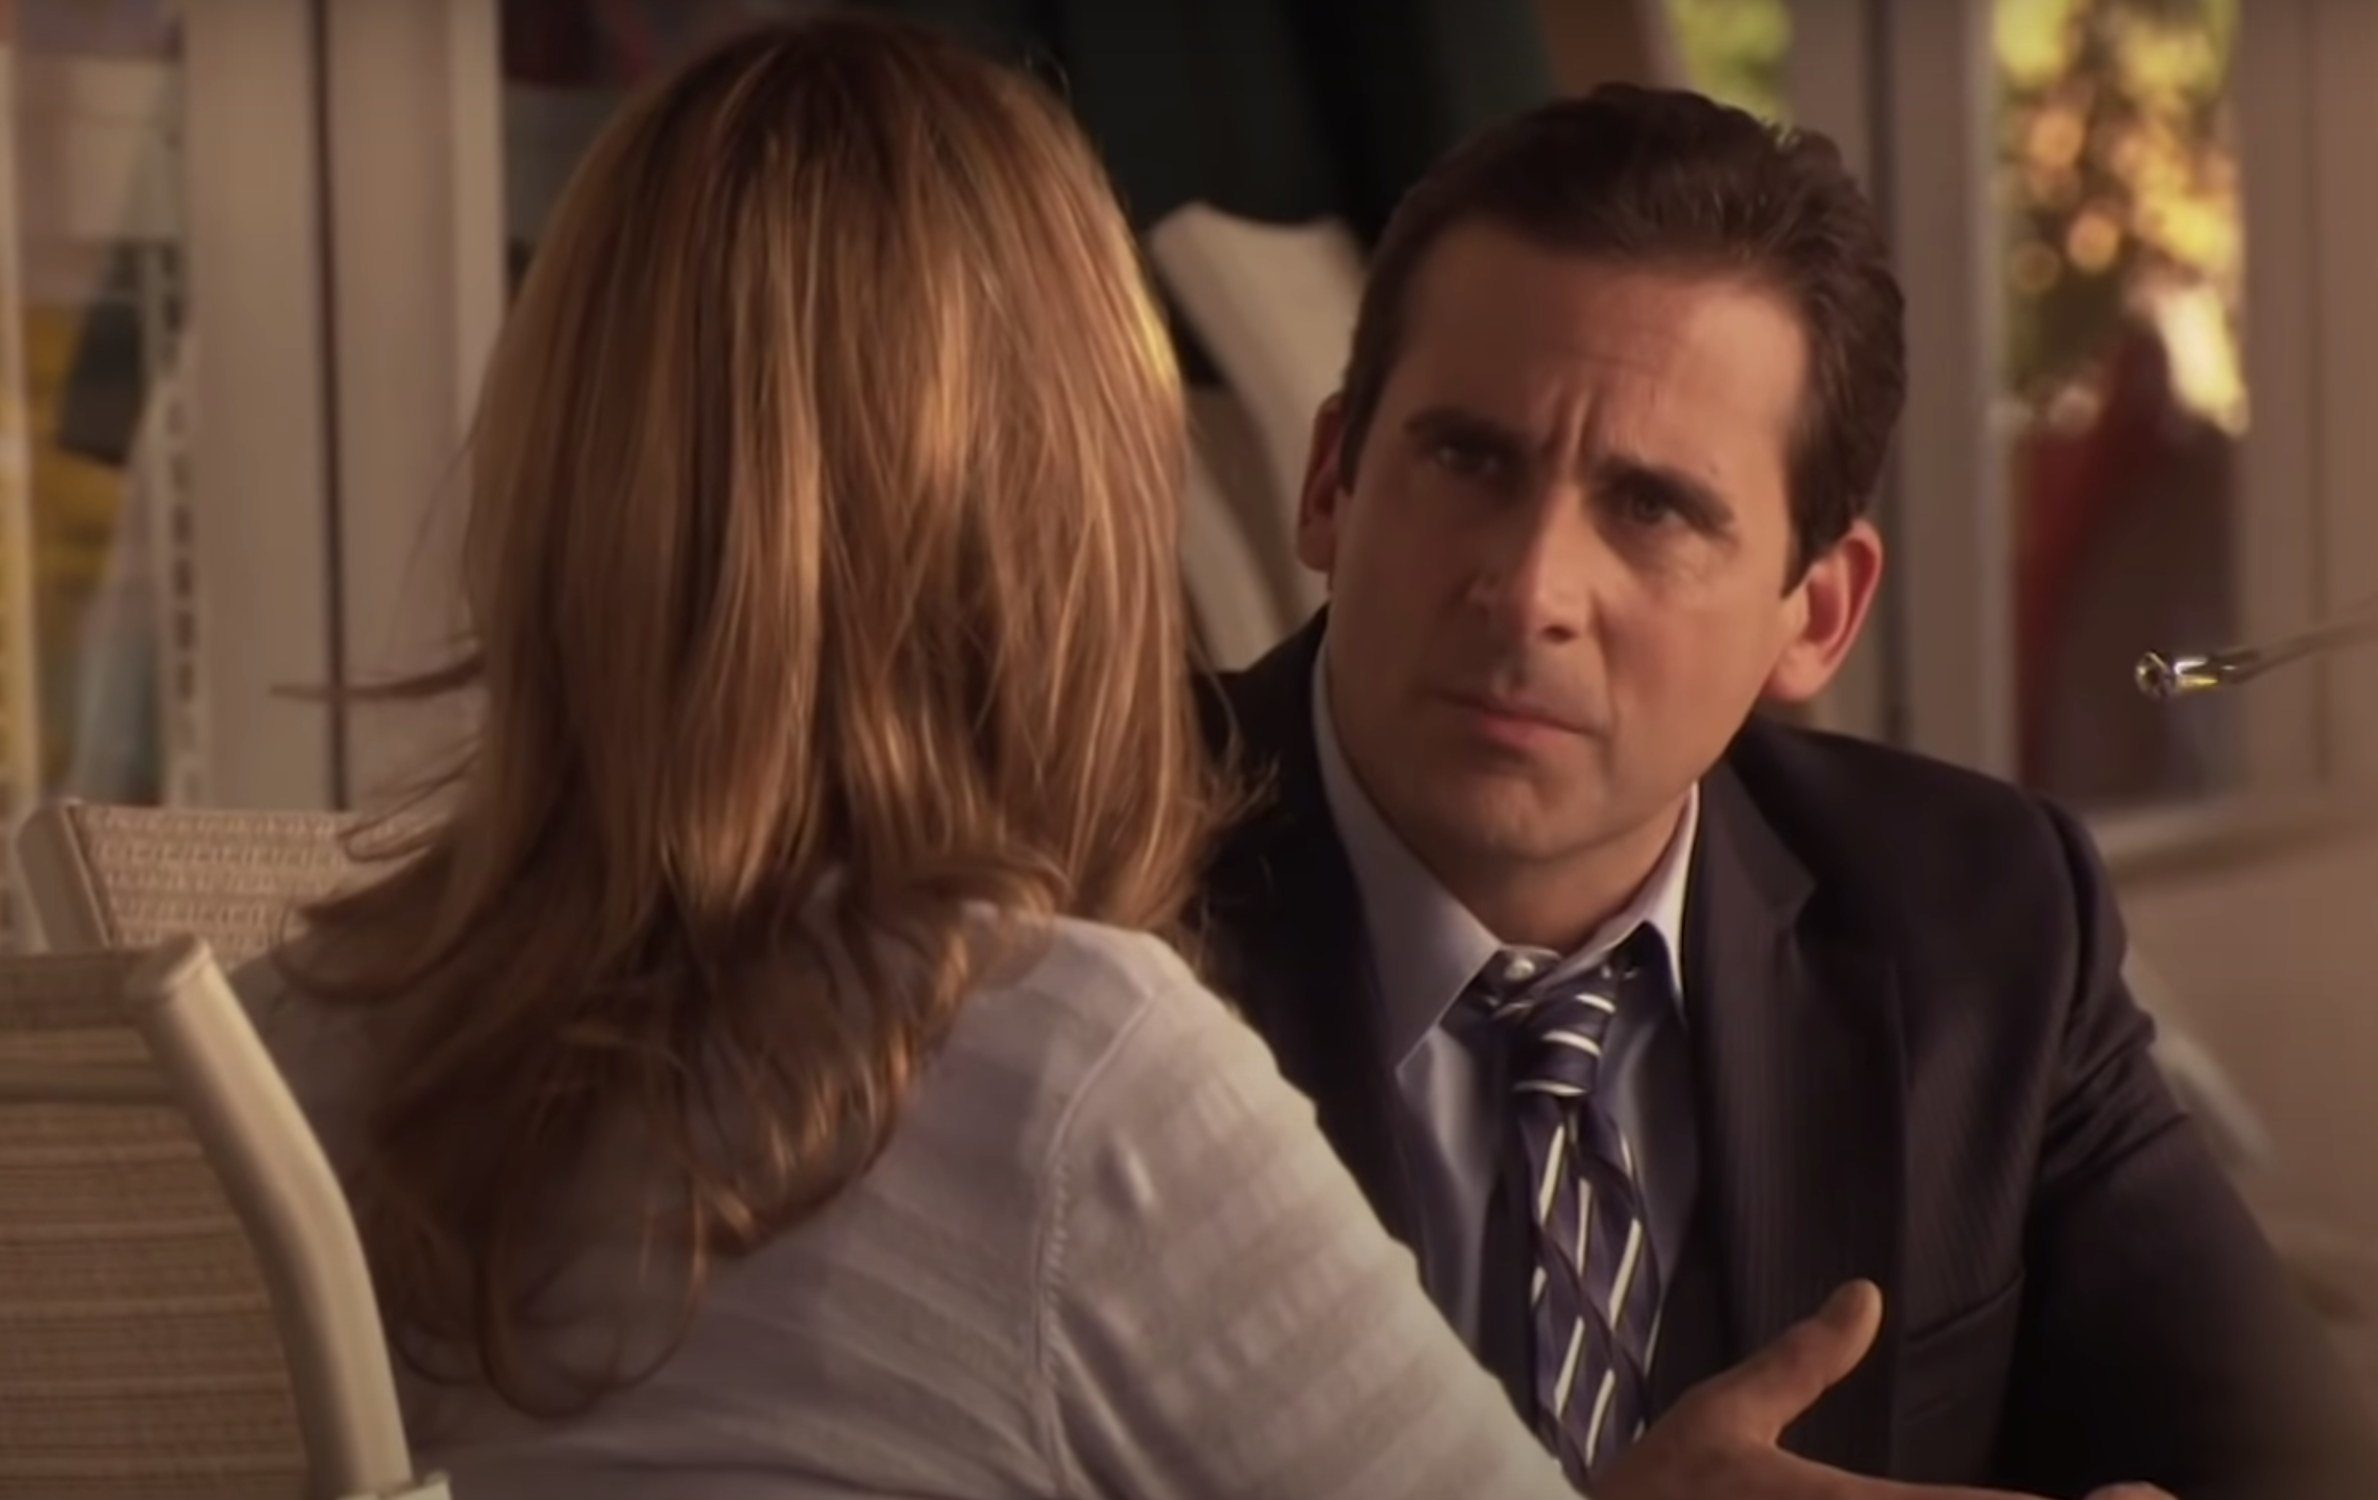 Michael looks at Jan while she talks about her pregnancy